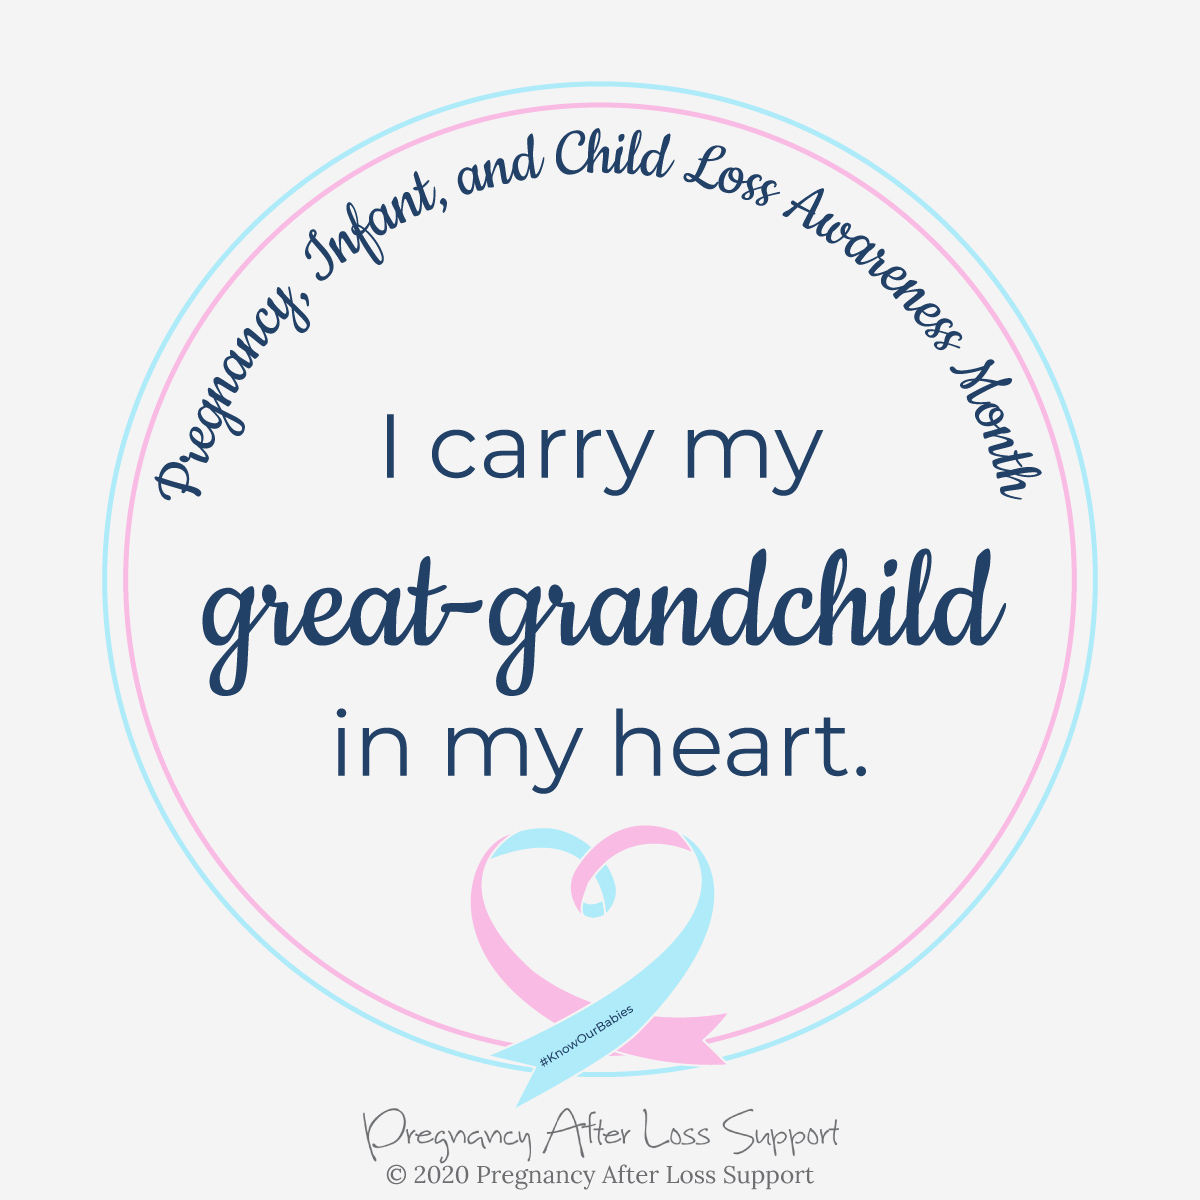 I carry my great-grandchild in my heart - Pregnancy, Infant, and Child Loss Awareness Month